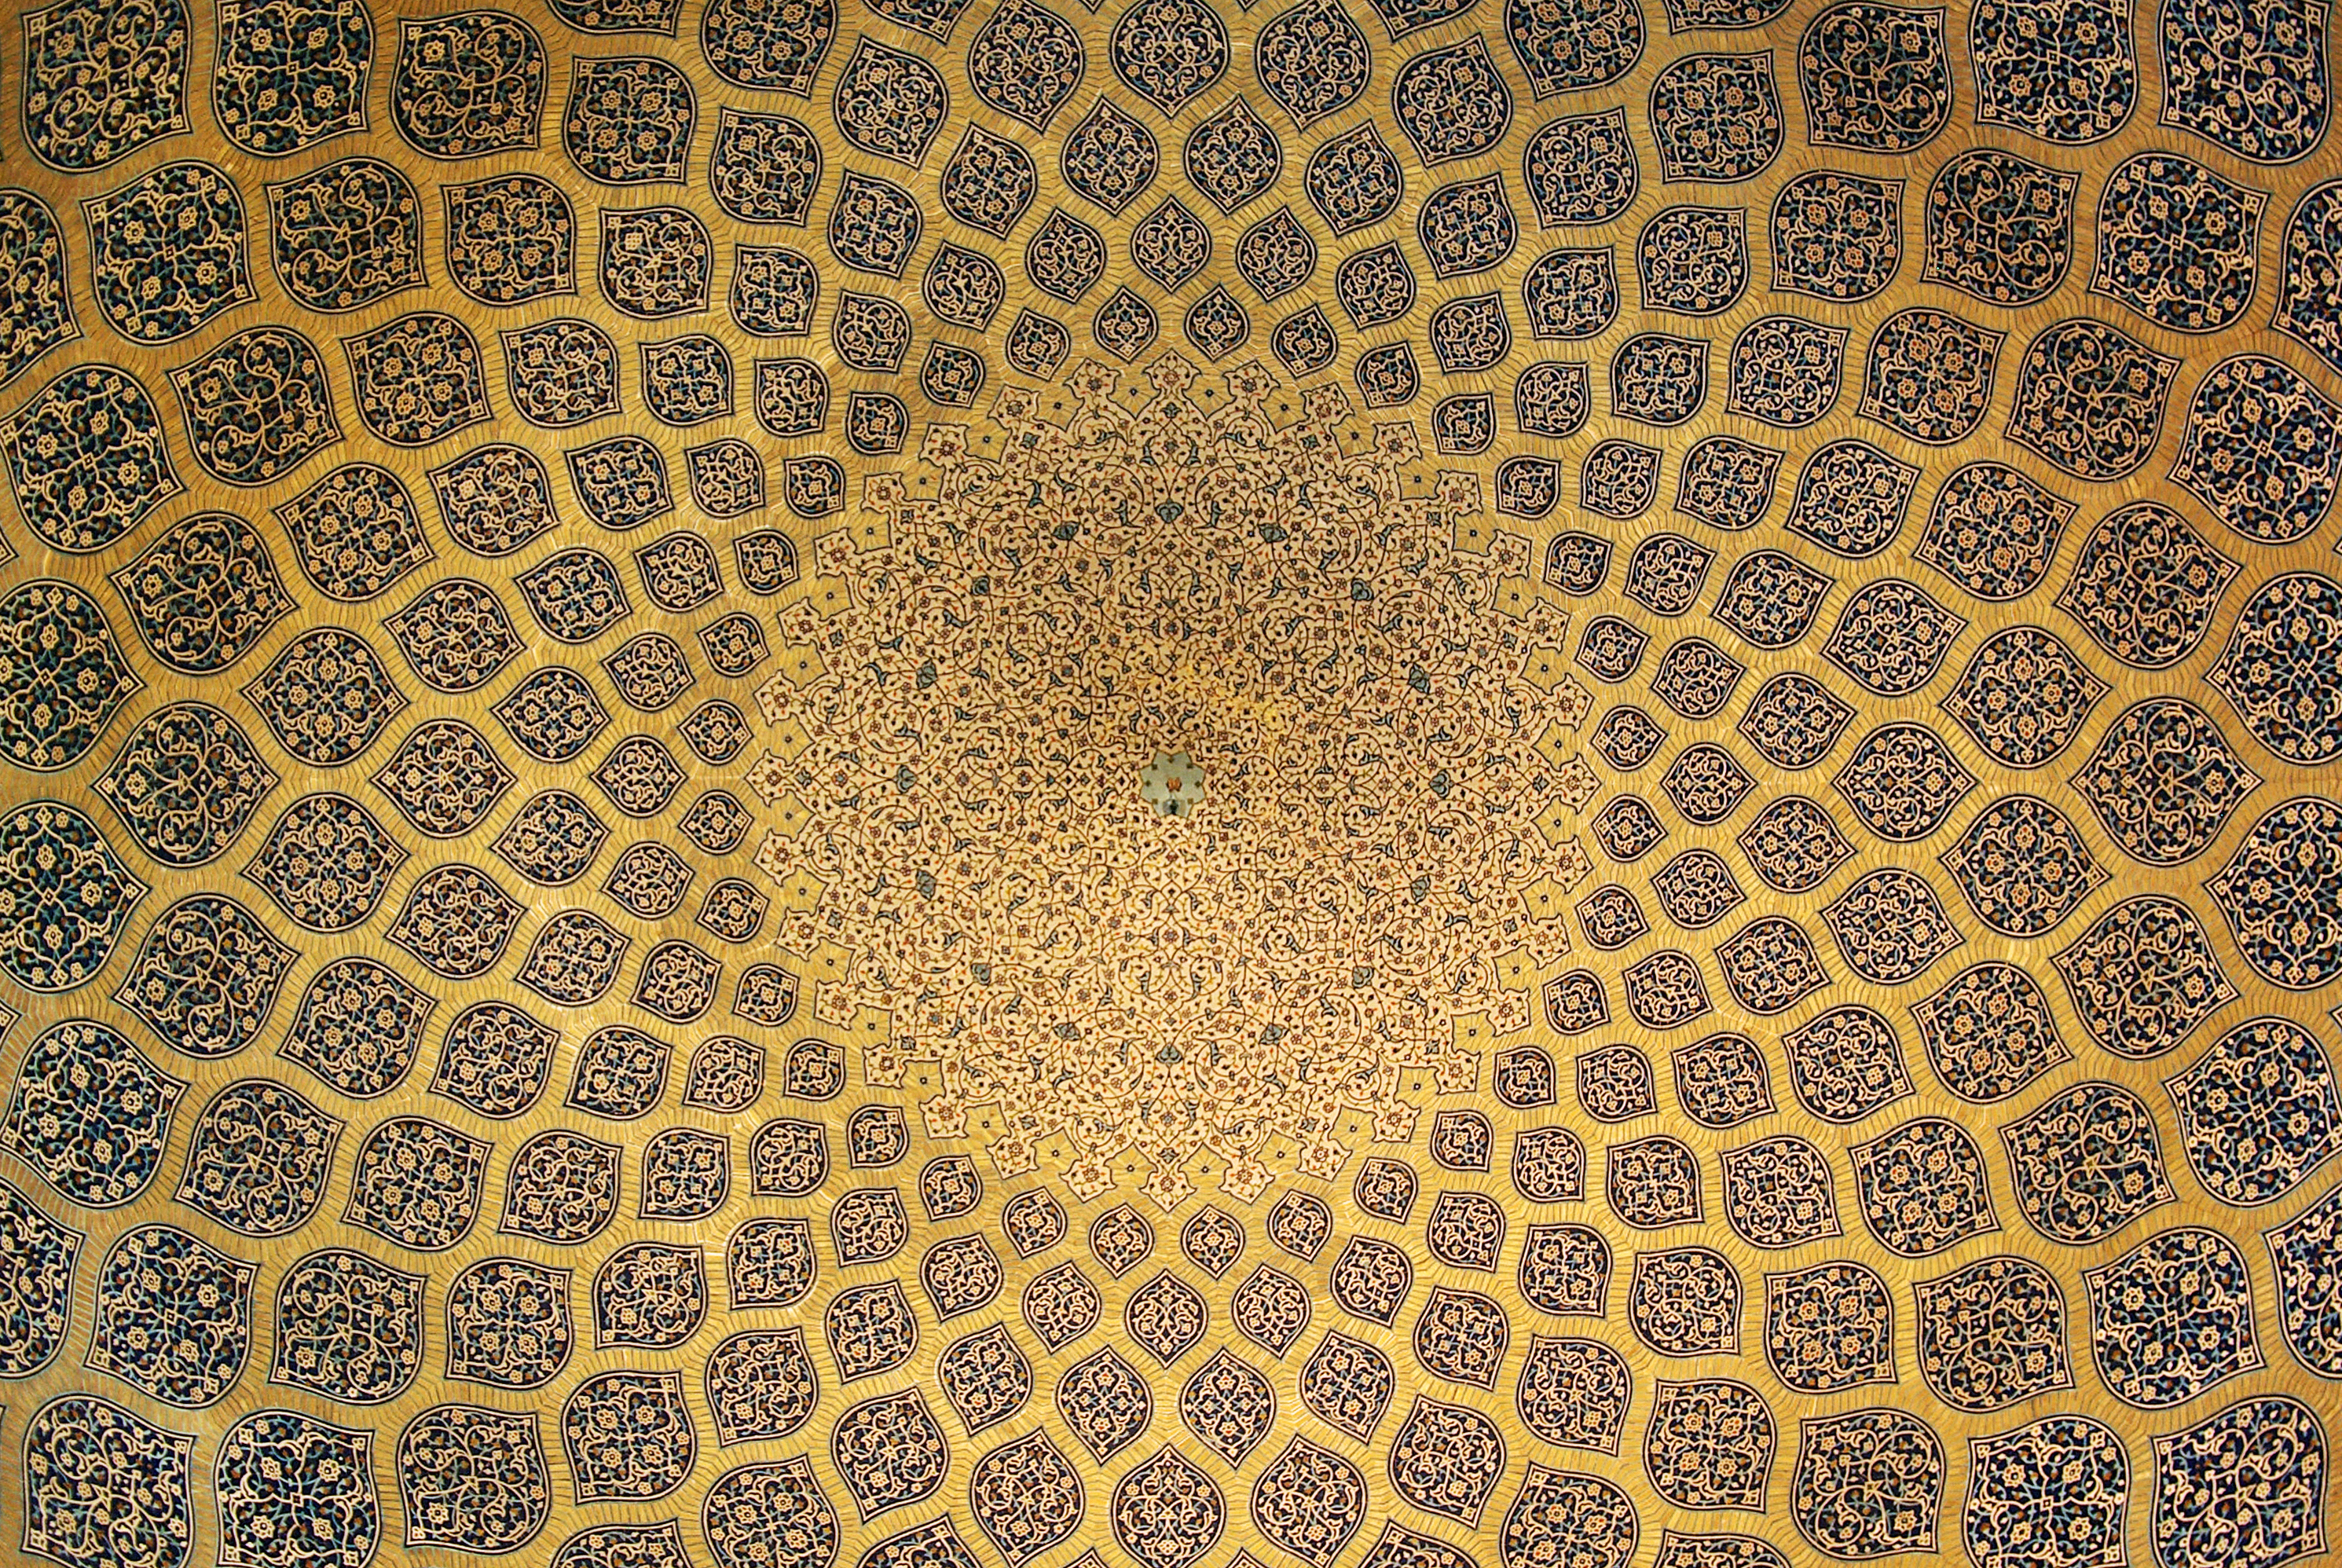 Esfahan had been